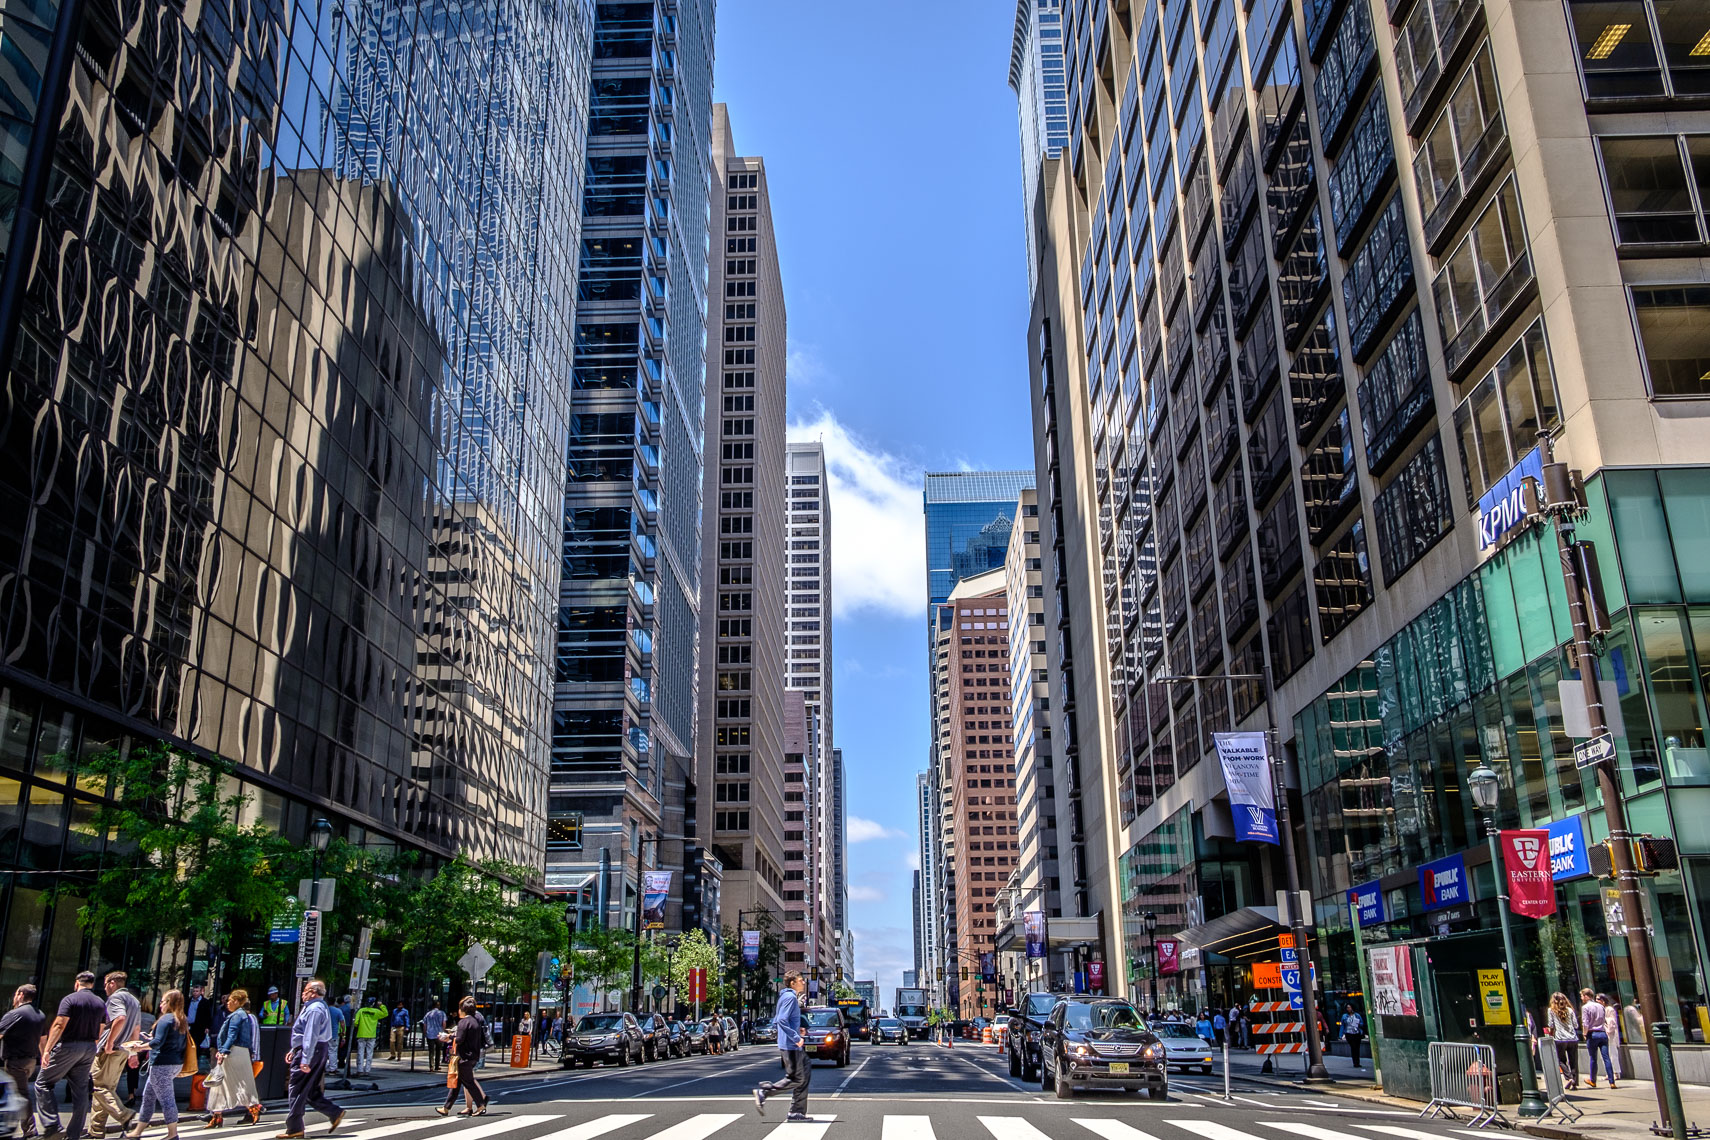 Downtown Philadelphia Street with People and Tall Buildings